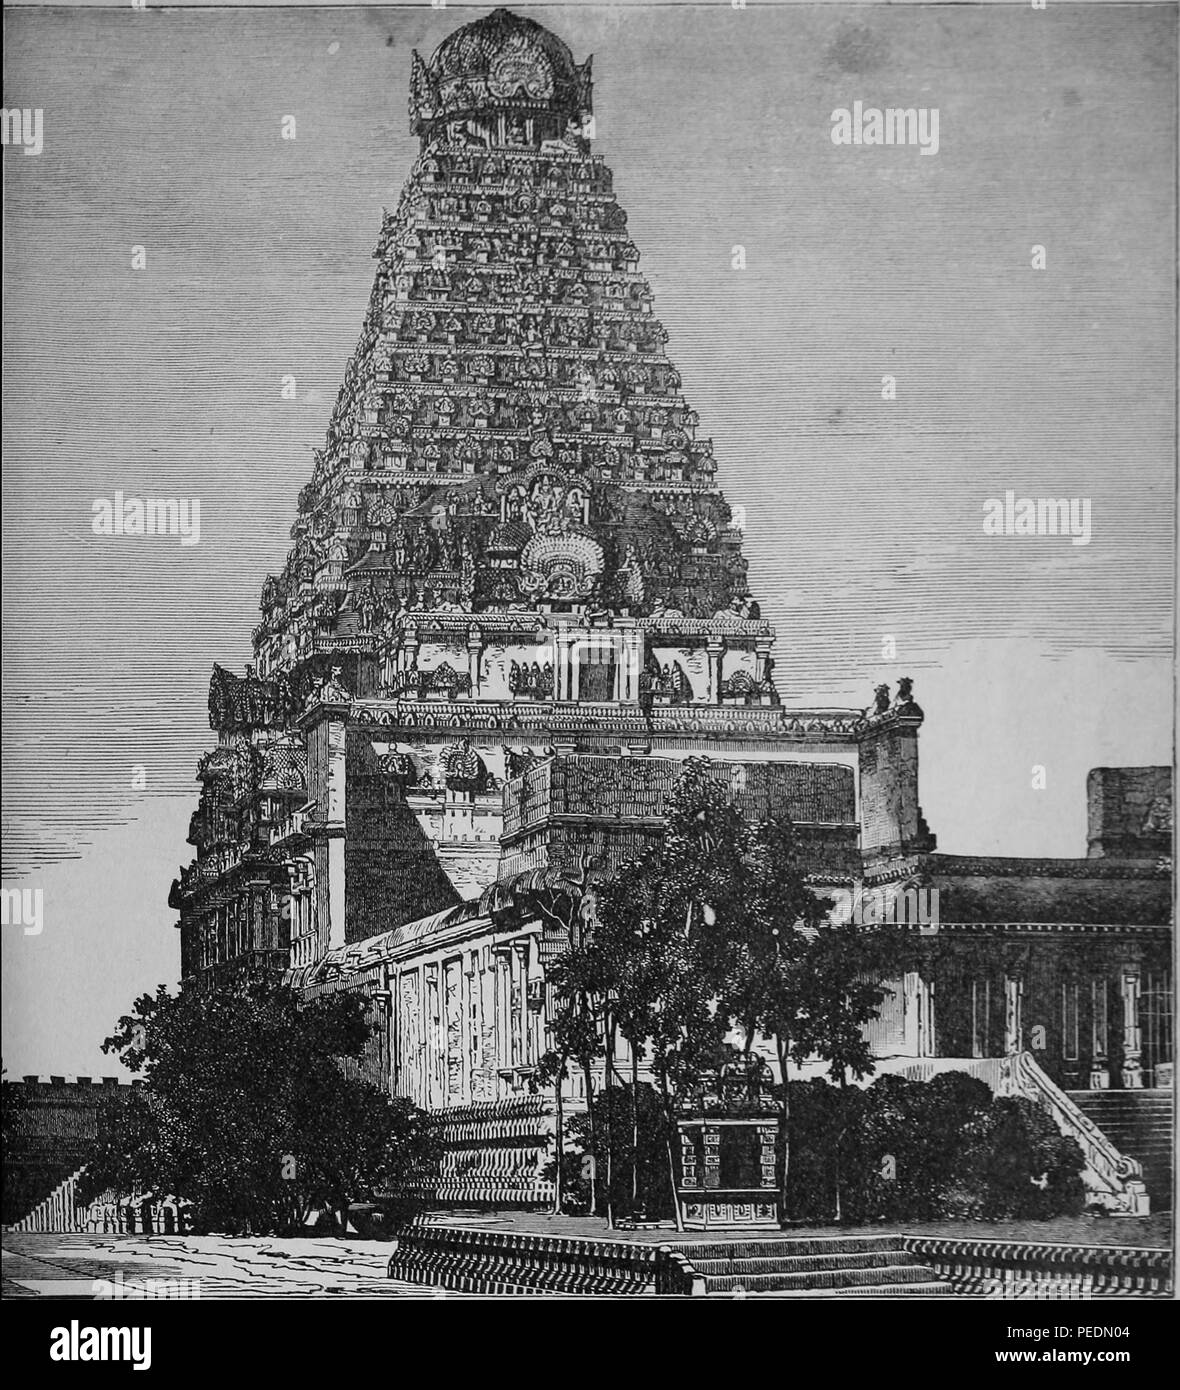 Black and white photograph of a large South Indian temple, possibly the Chola dynasty Brihadisvara Temple, located in Thanjavur, Tamil Nadu, India, 1884. Courtesy Internet Archive. () - Stock Image